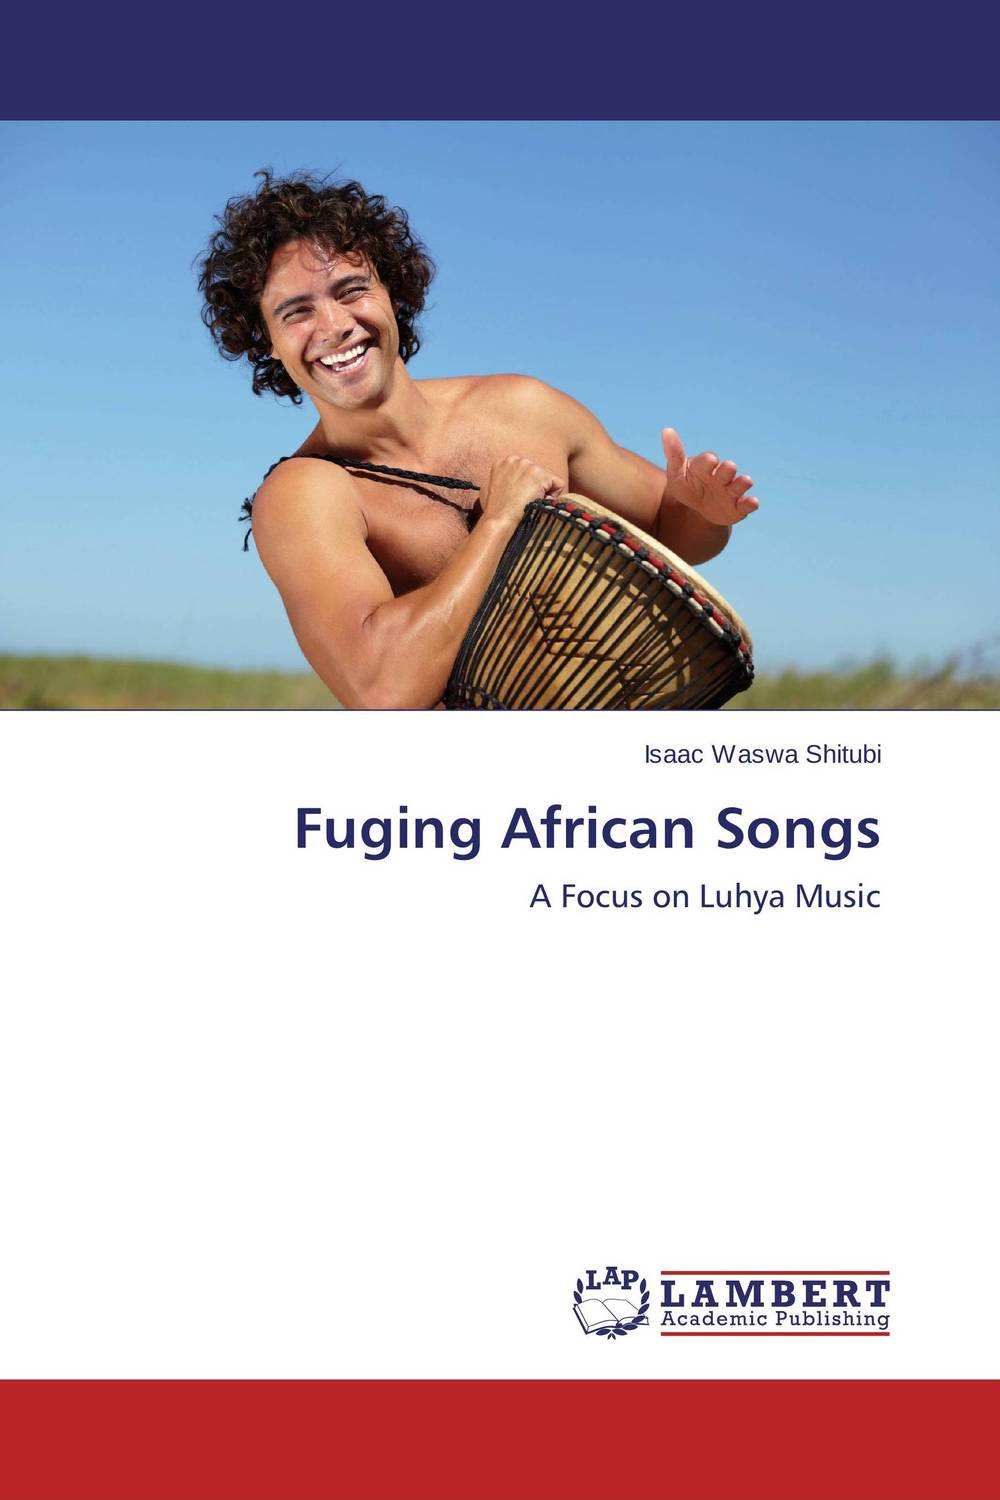 Fuging African Songs monsters of folk monsters of folk monsters of folk